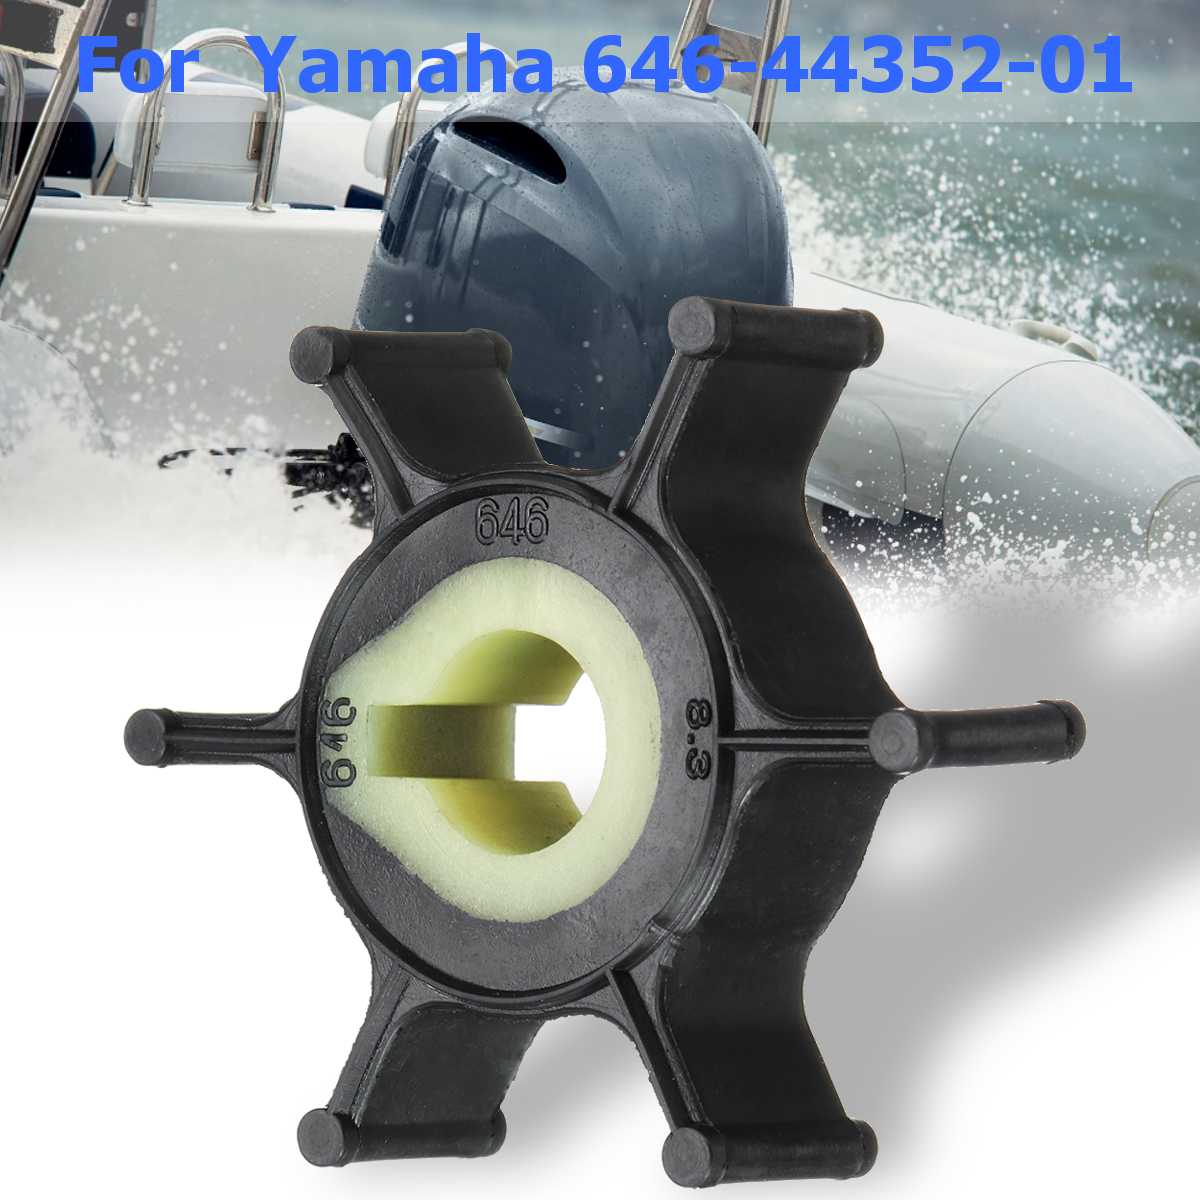 Boat Outboard Motor 646-44352-01 Replacement Water Pump Impeller For Yamaha 2HP For Sierra 18-3072 Rubber For Mariner 47-80395M